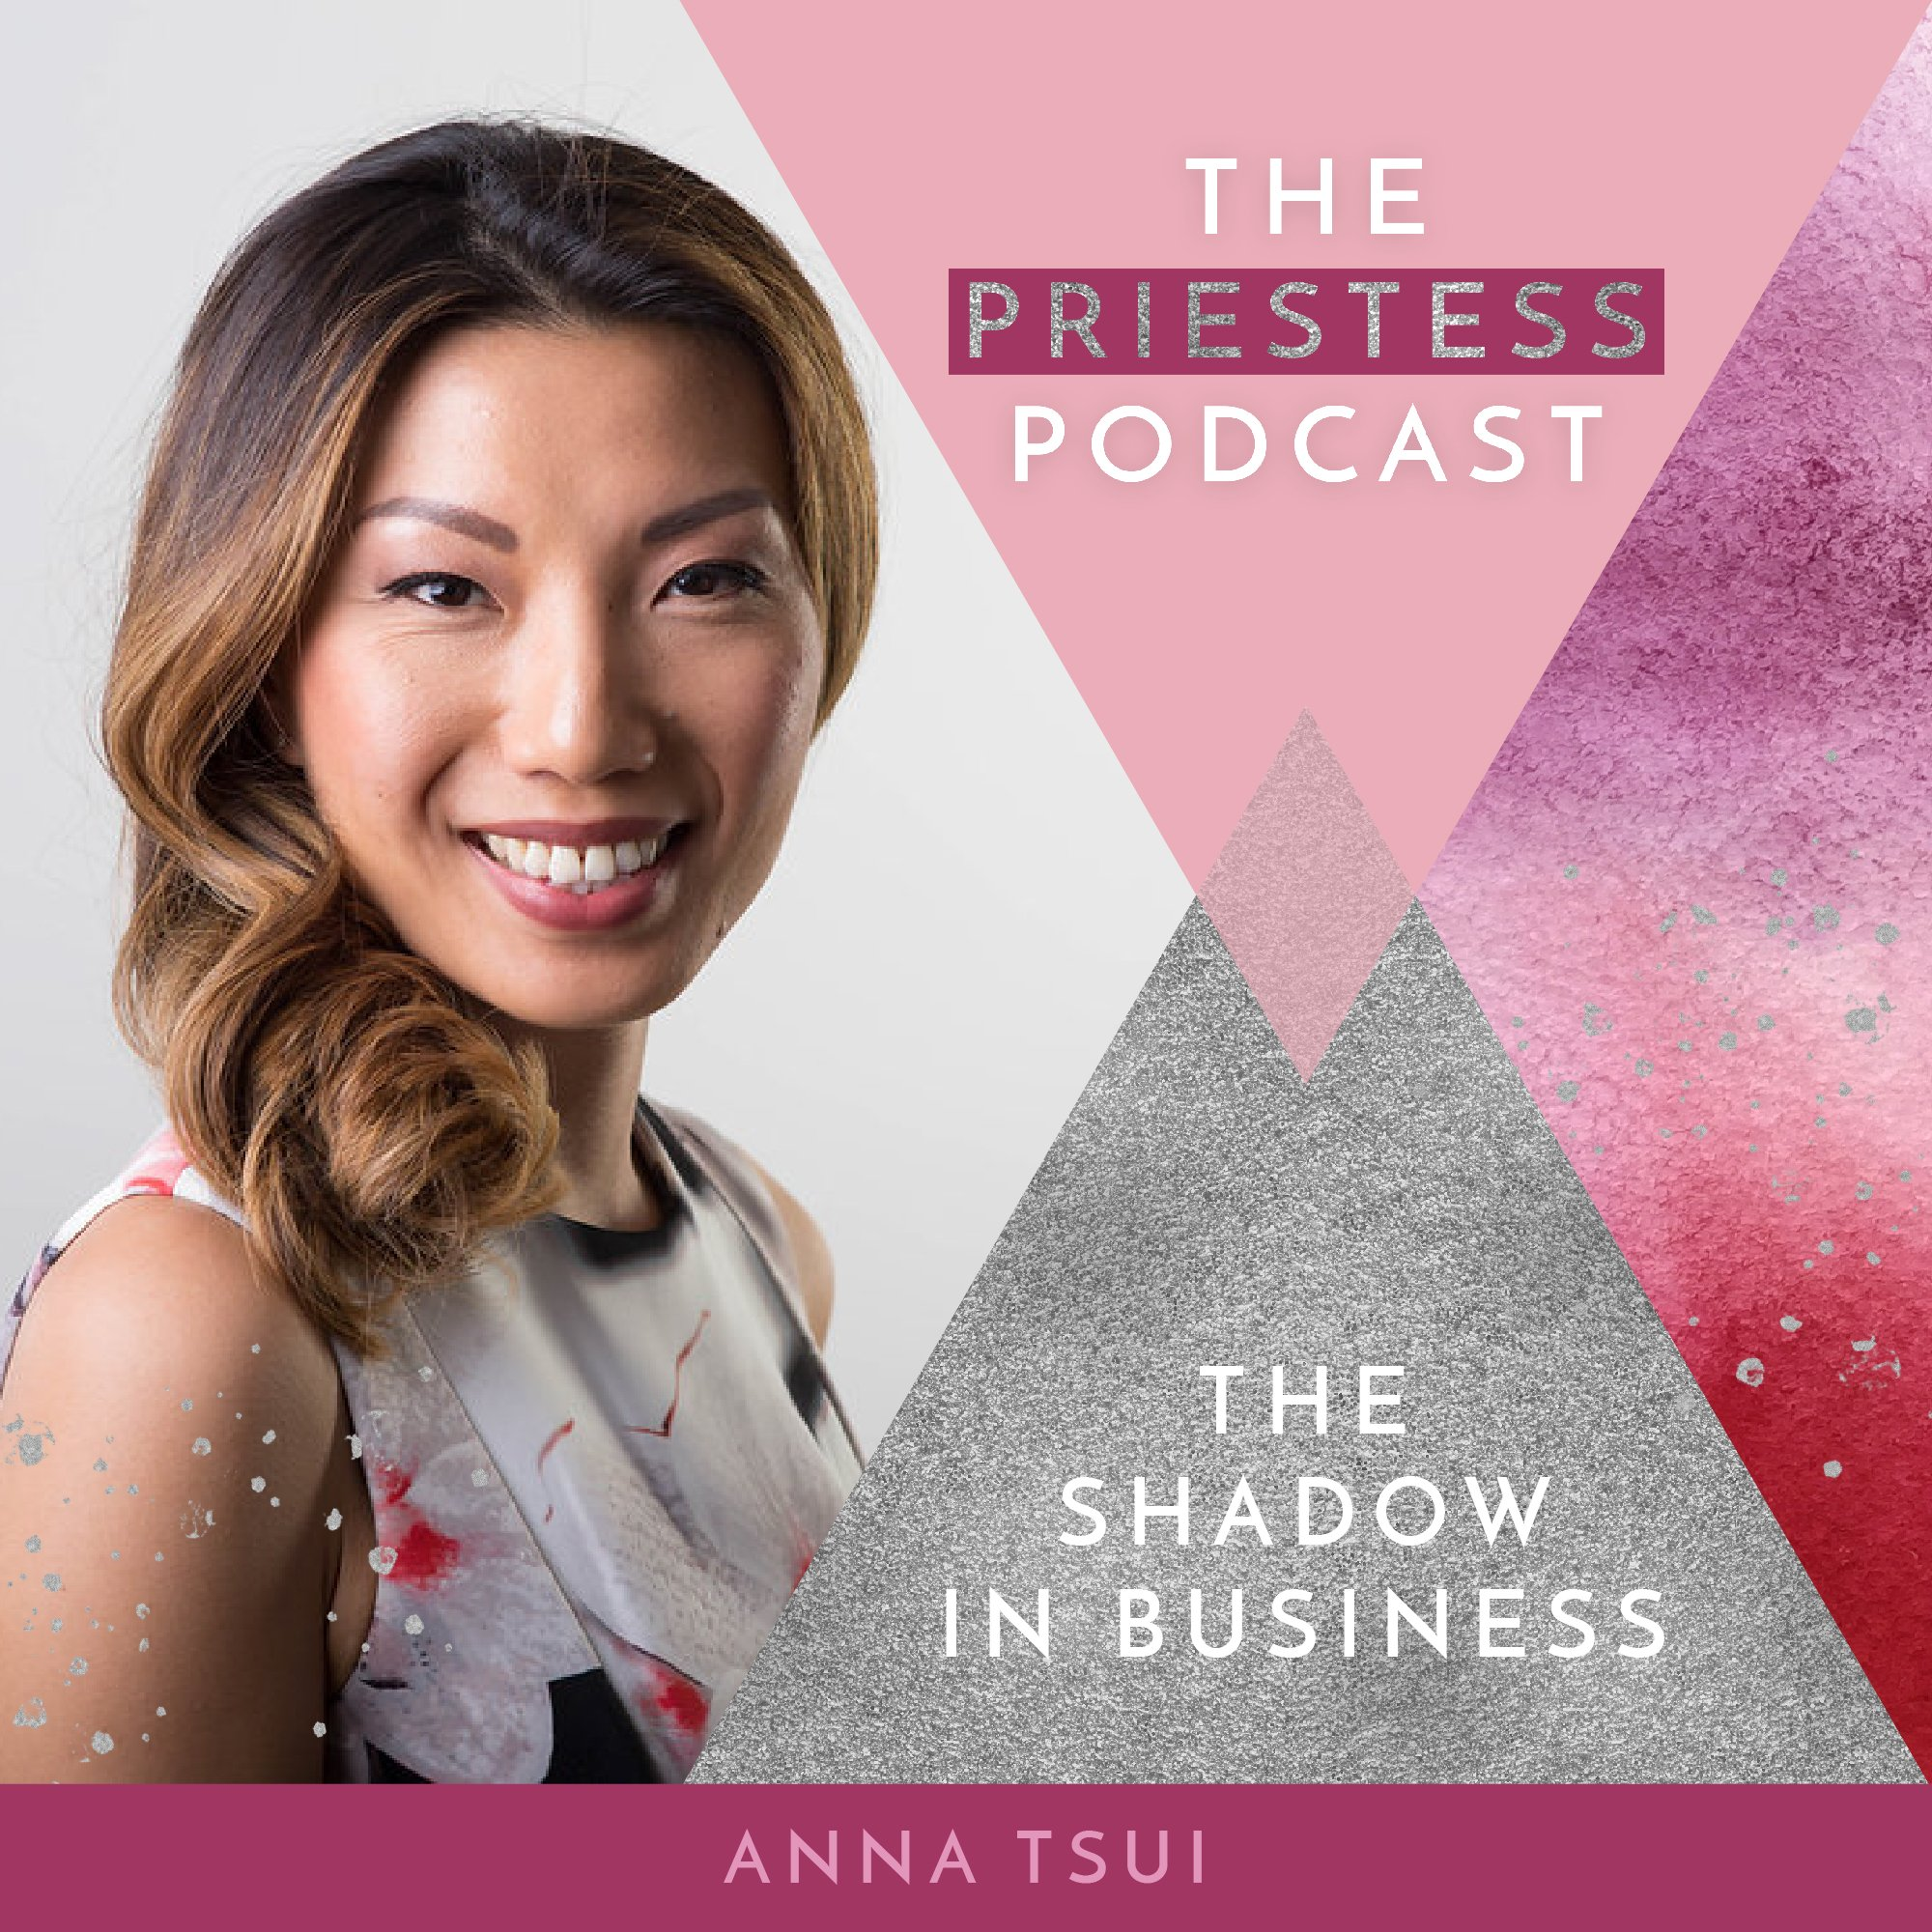 Anna Tsui on The Shadow in Business